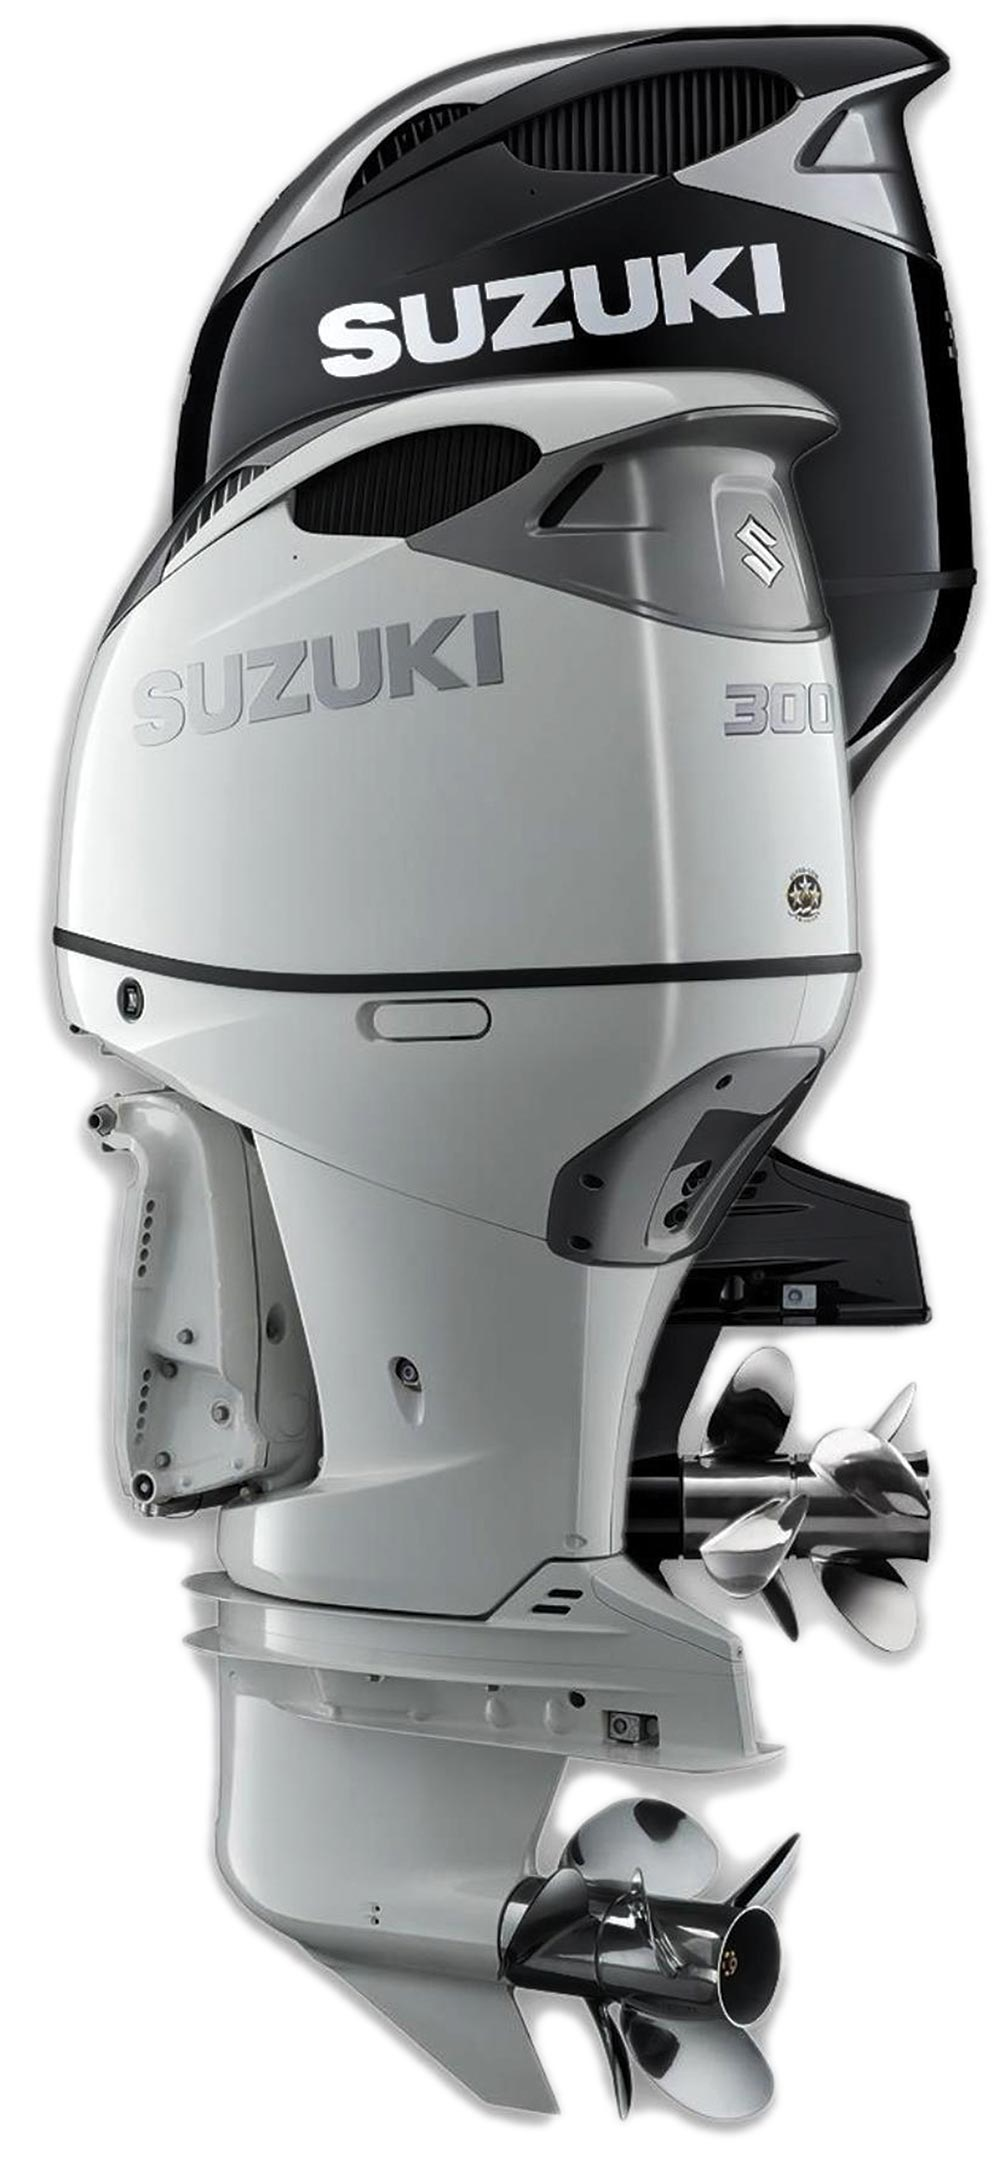 Product Review Twin Suzuki DF300Bs